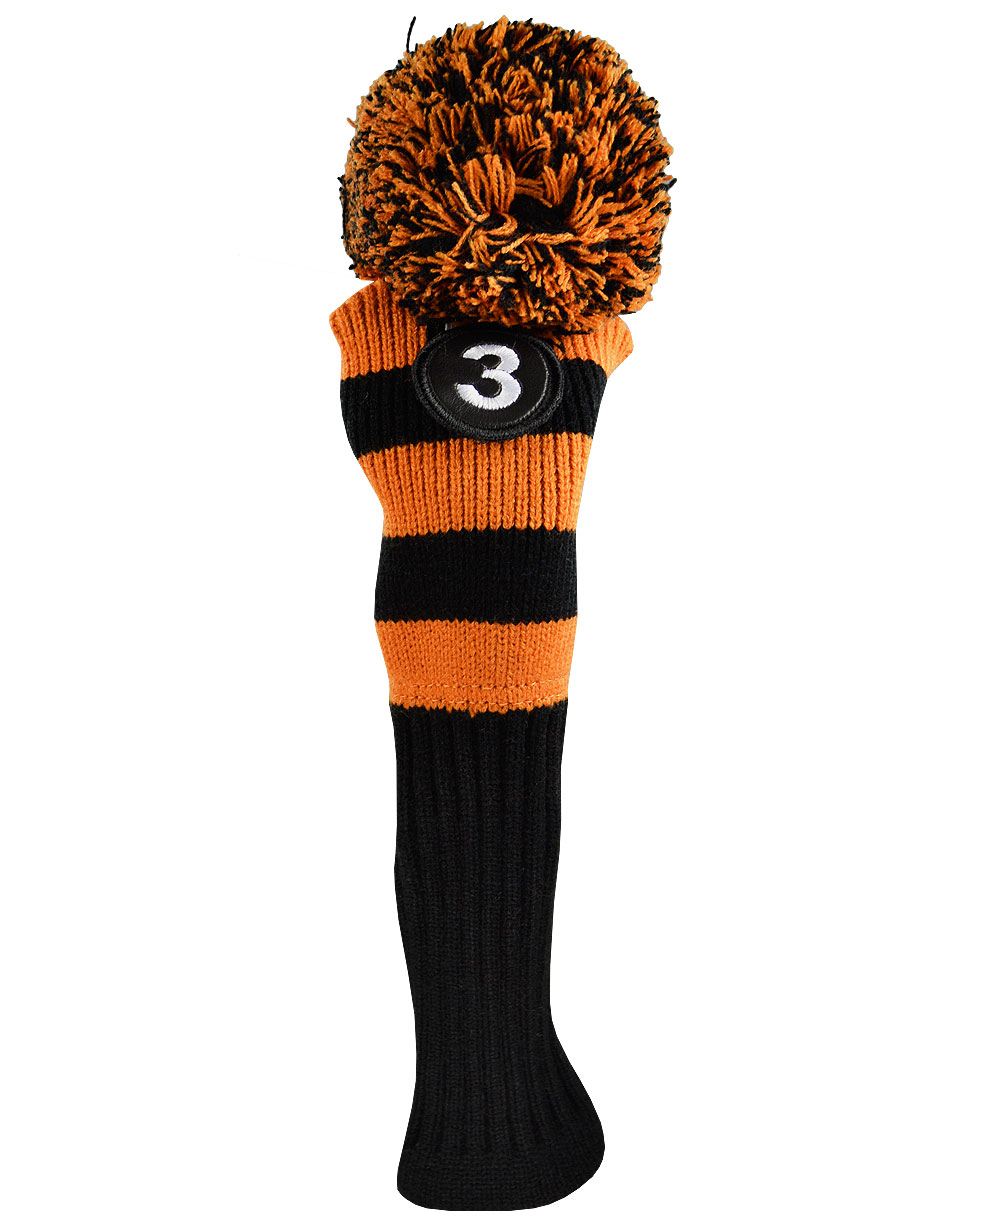 Knitting Terminology M1 : Ray cook pom knit fairway wood head cover by